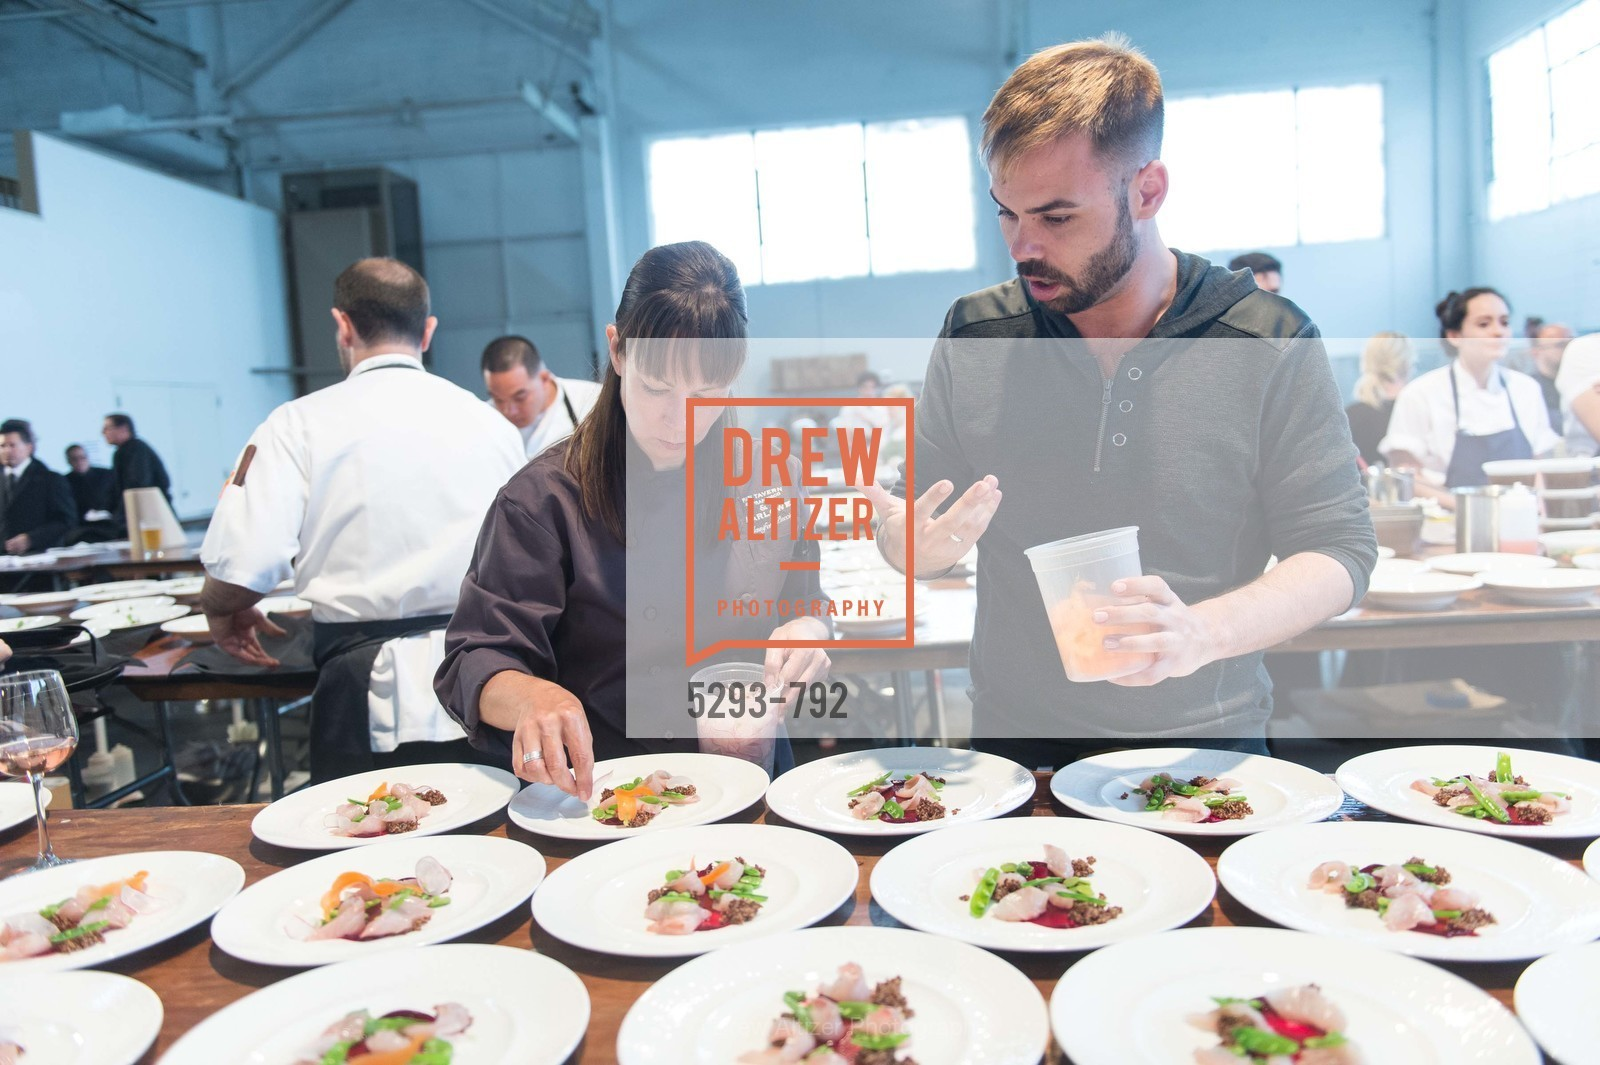 Bradley Waldon, Jennifer Puccio, MEALS ON WHEELS OF SAN FRANCISCO'S 28th Annual Star Chefs and Vintners Gala, US, April 20th, 2015,Drew Altizer, Drew Altizer Photography, full-service event agency, private events, San Francisco photographer, photographer California